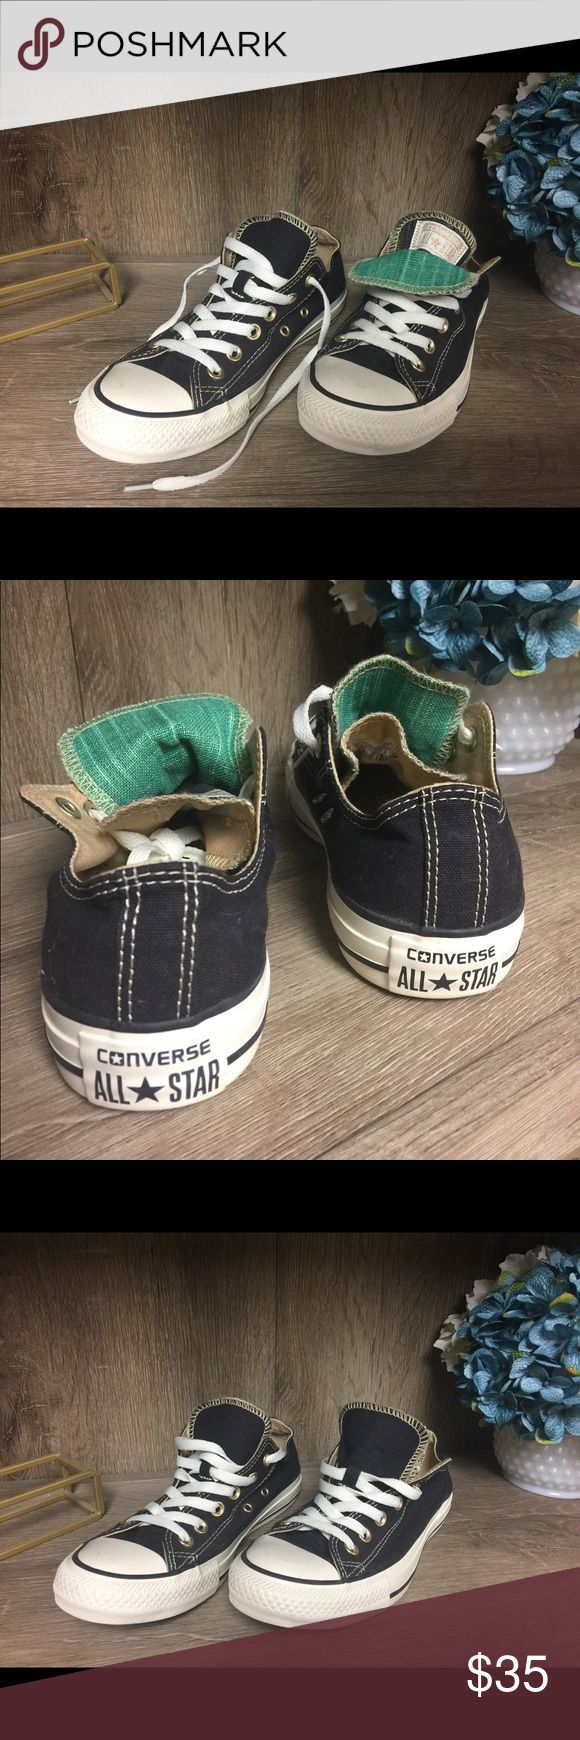 Converse Double Tongue Sneaker Converse Double Tongue black and green sneaker.  Worn only a couple of times, in great condition! Converse Shoes Sneakers